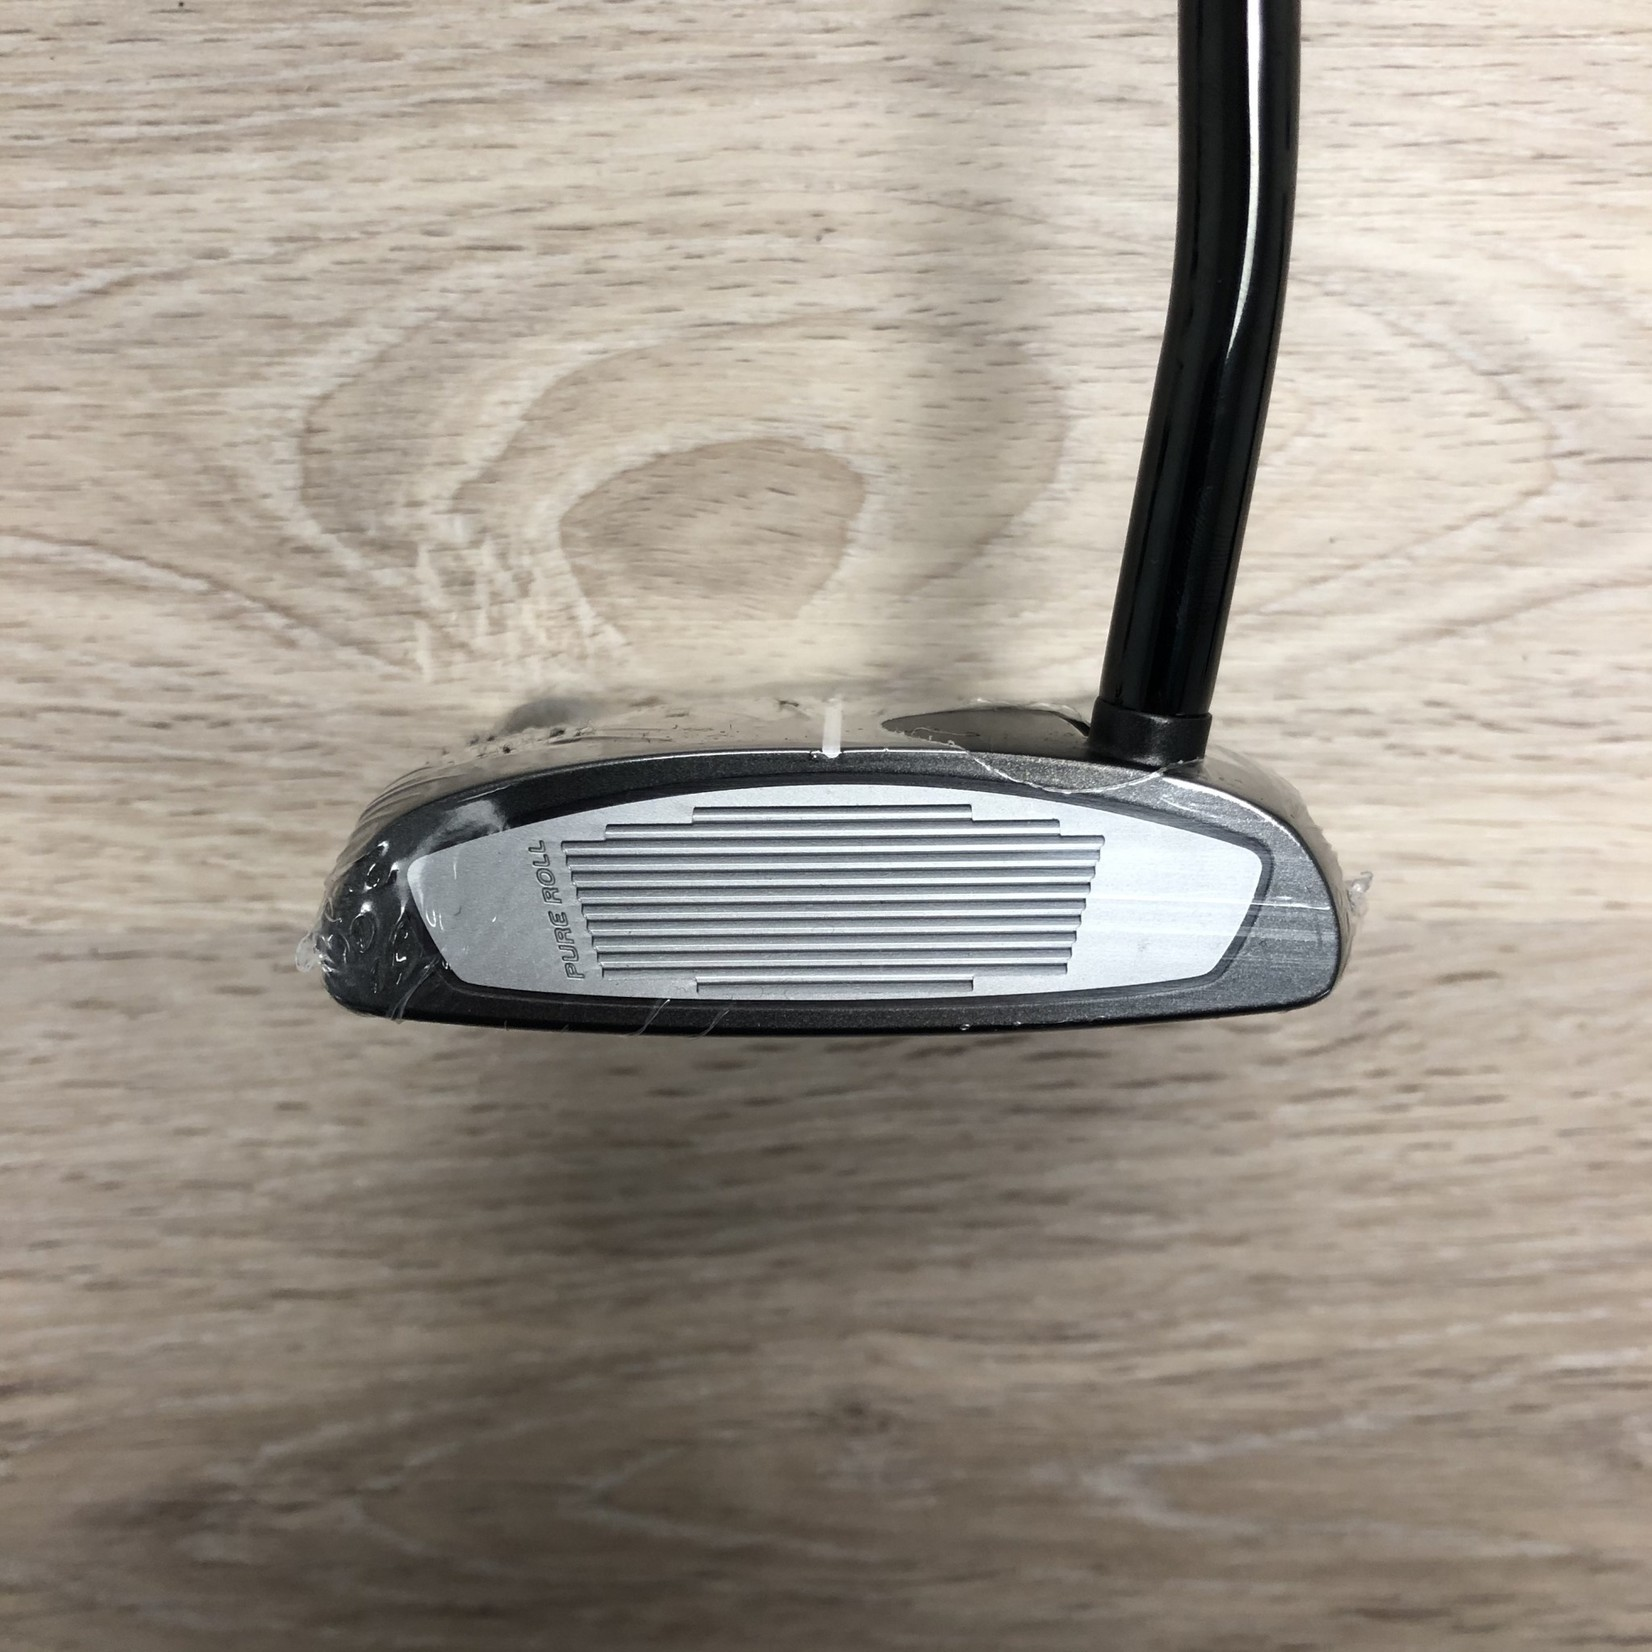 TaylorMade (Demo) TaylorMade Spider Tour Double Bend Putter 35 Inches (RH)